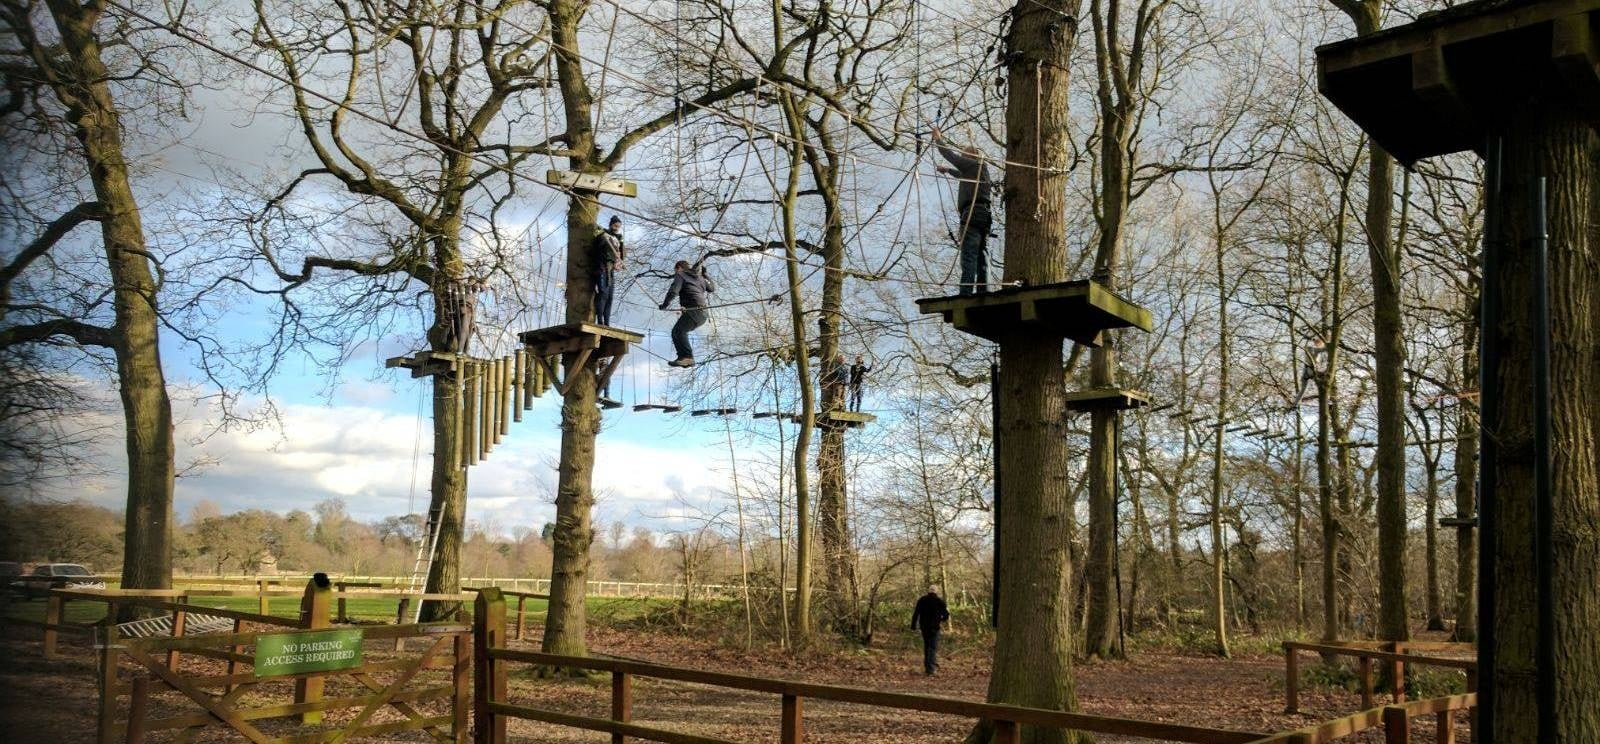 Child High Ropes Course - Nationwide-4